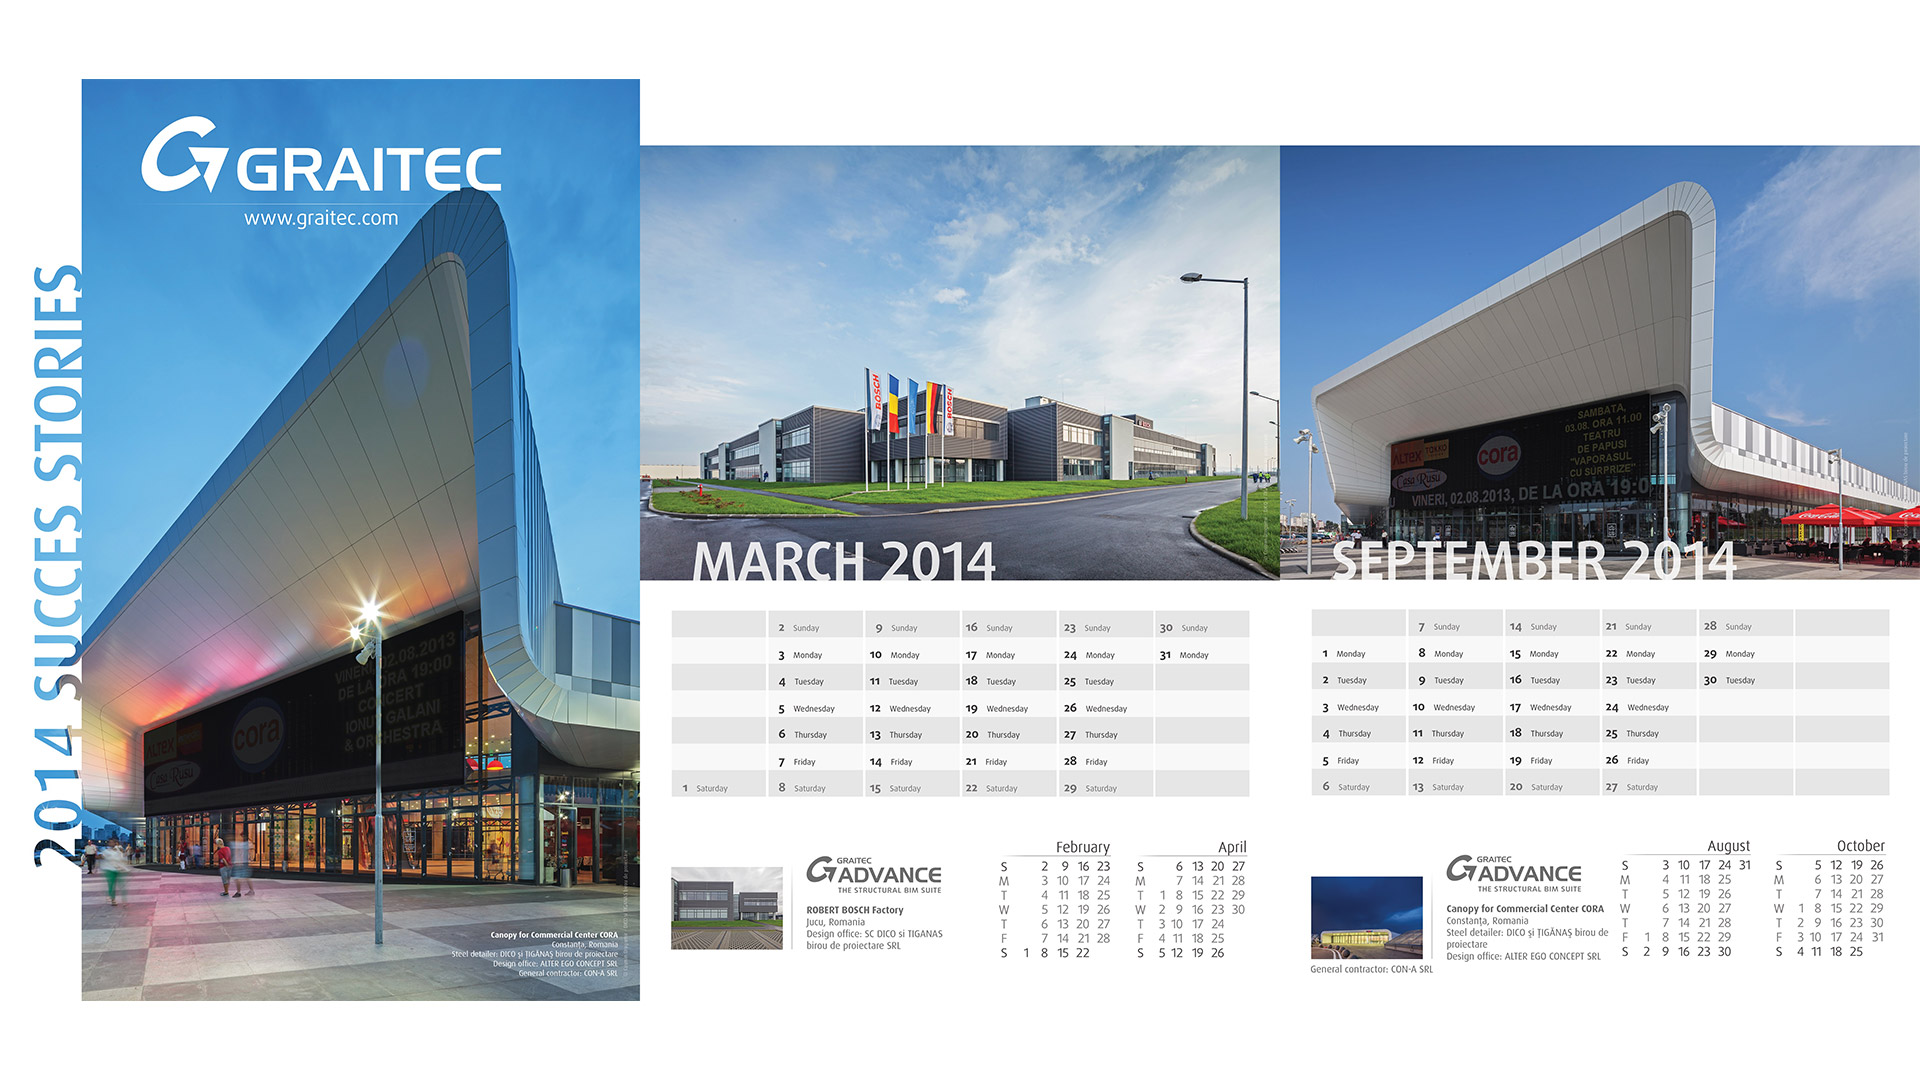 Graitec Calendar, Commercial Center Cora, Bosch, 2014